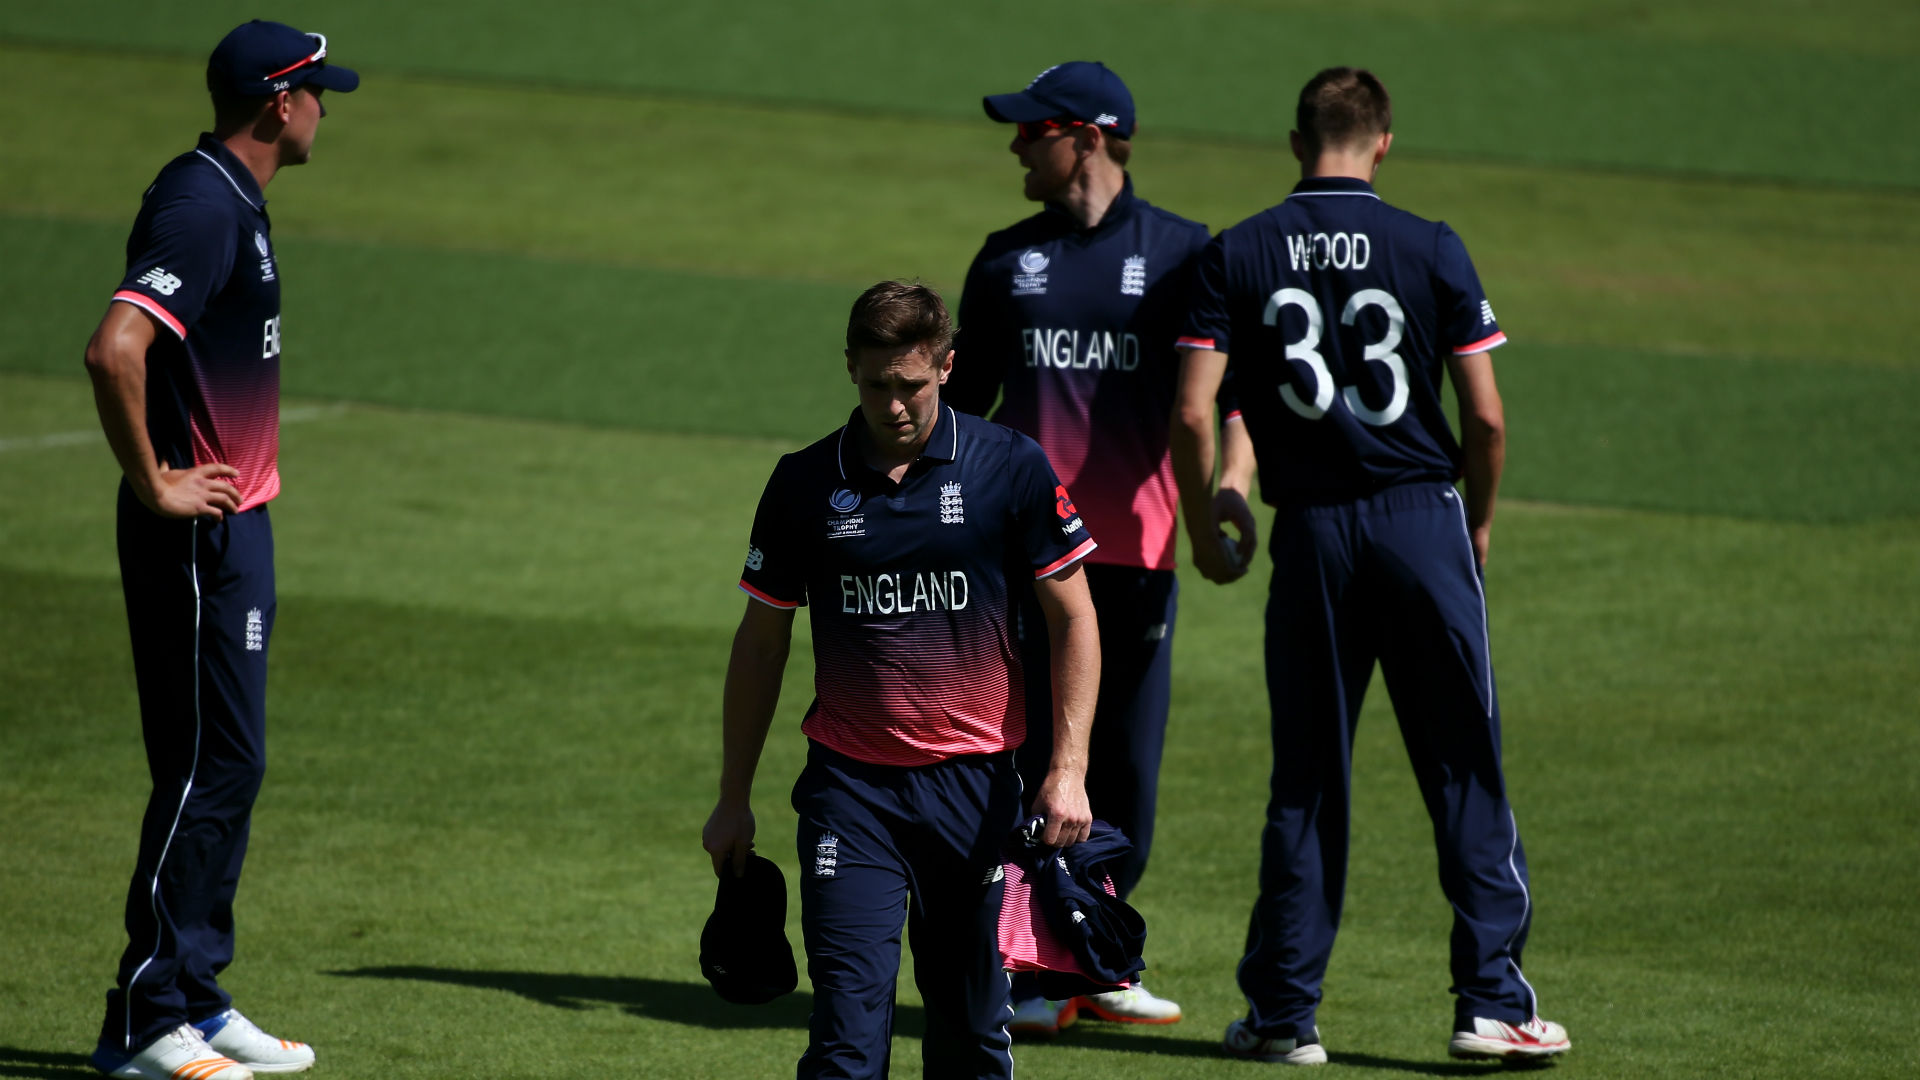 England bring in Finn as Woakes' replacement